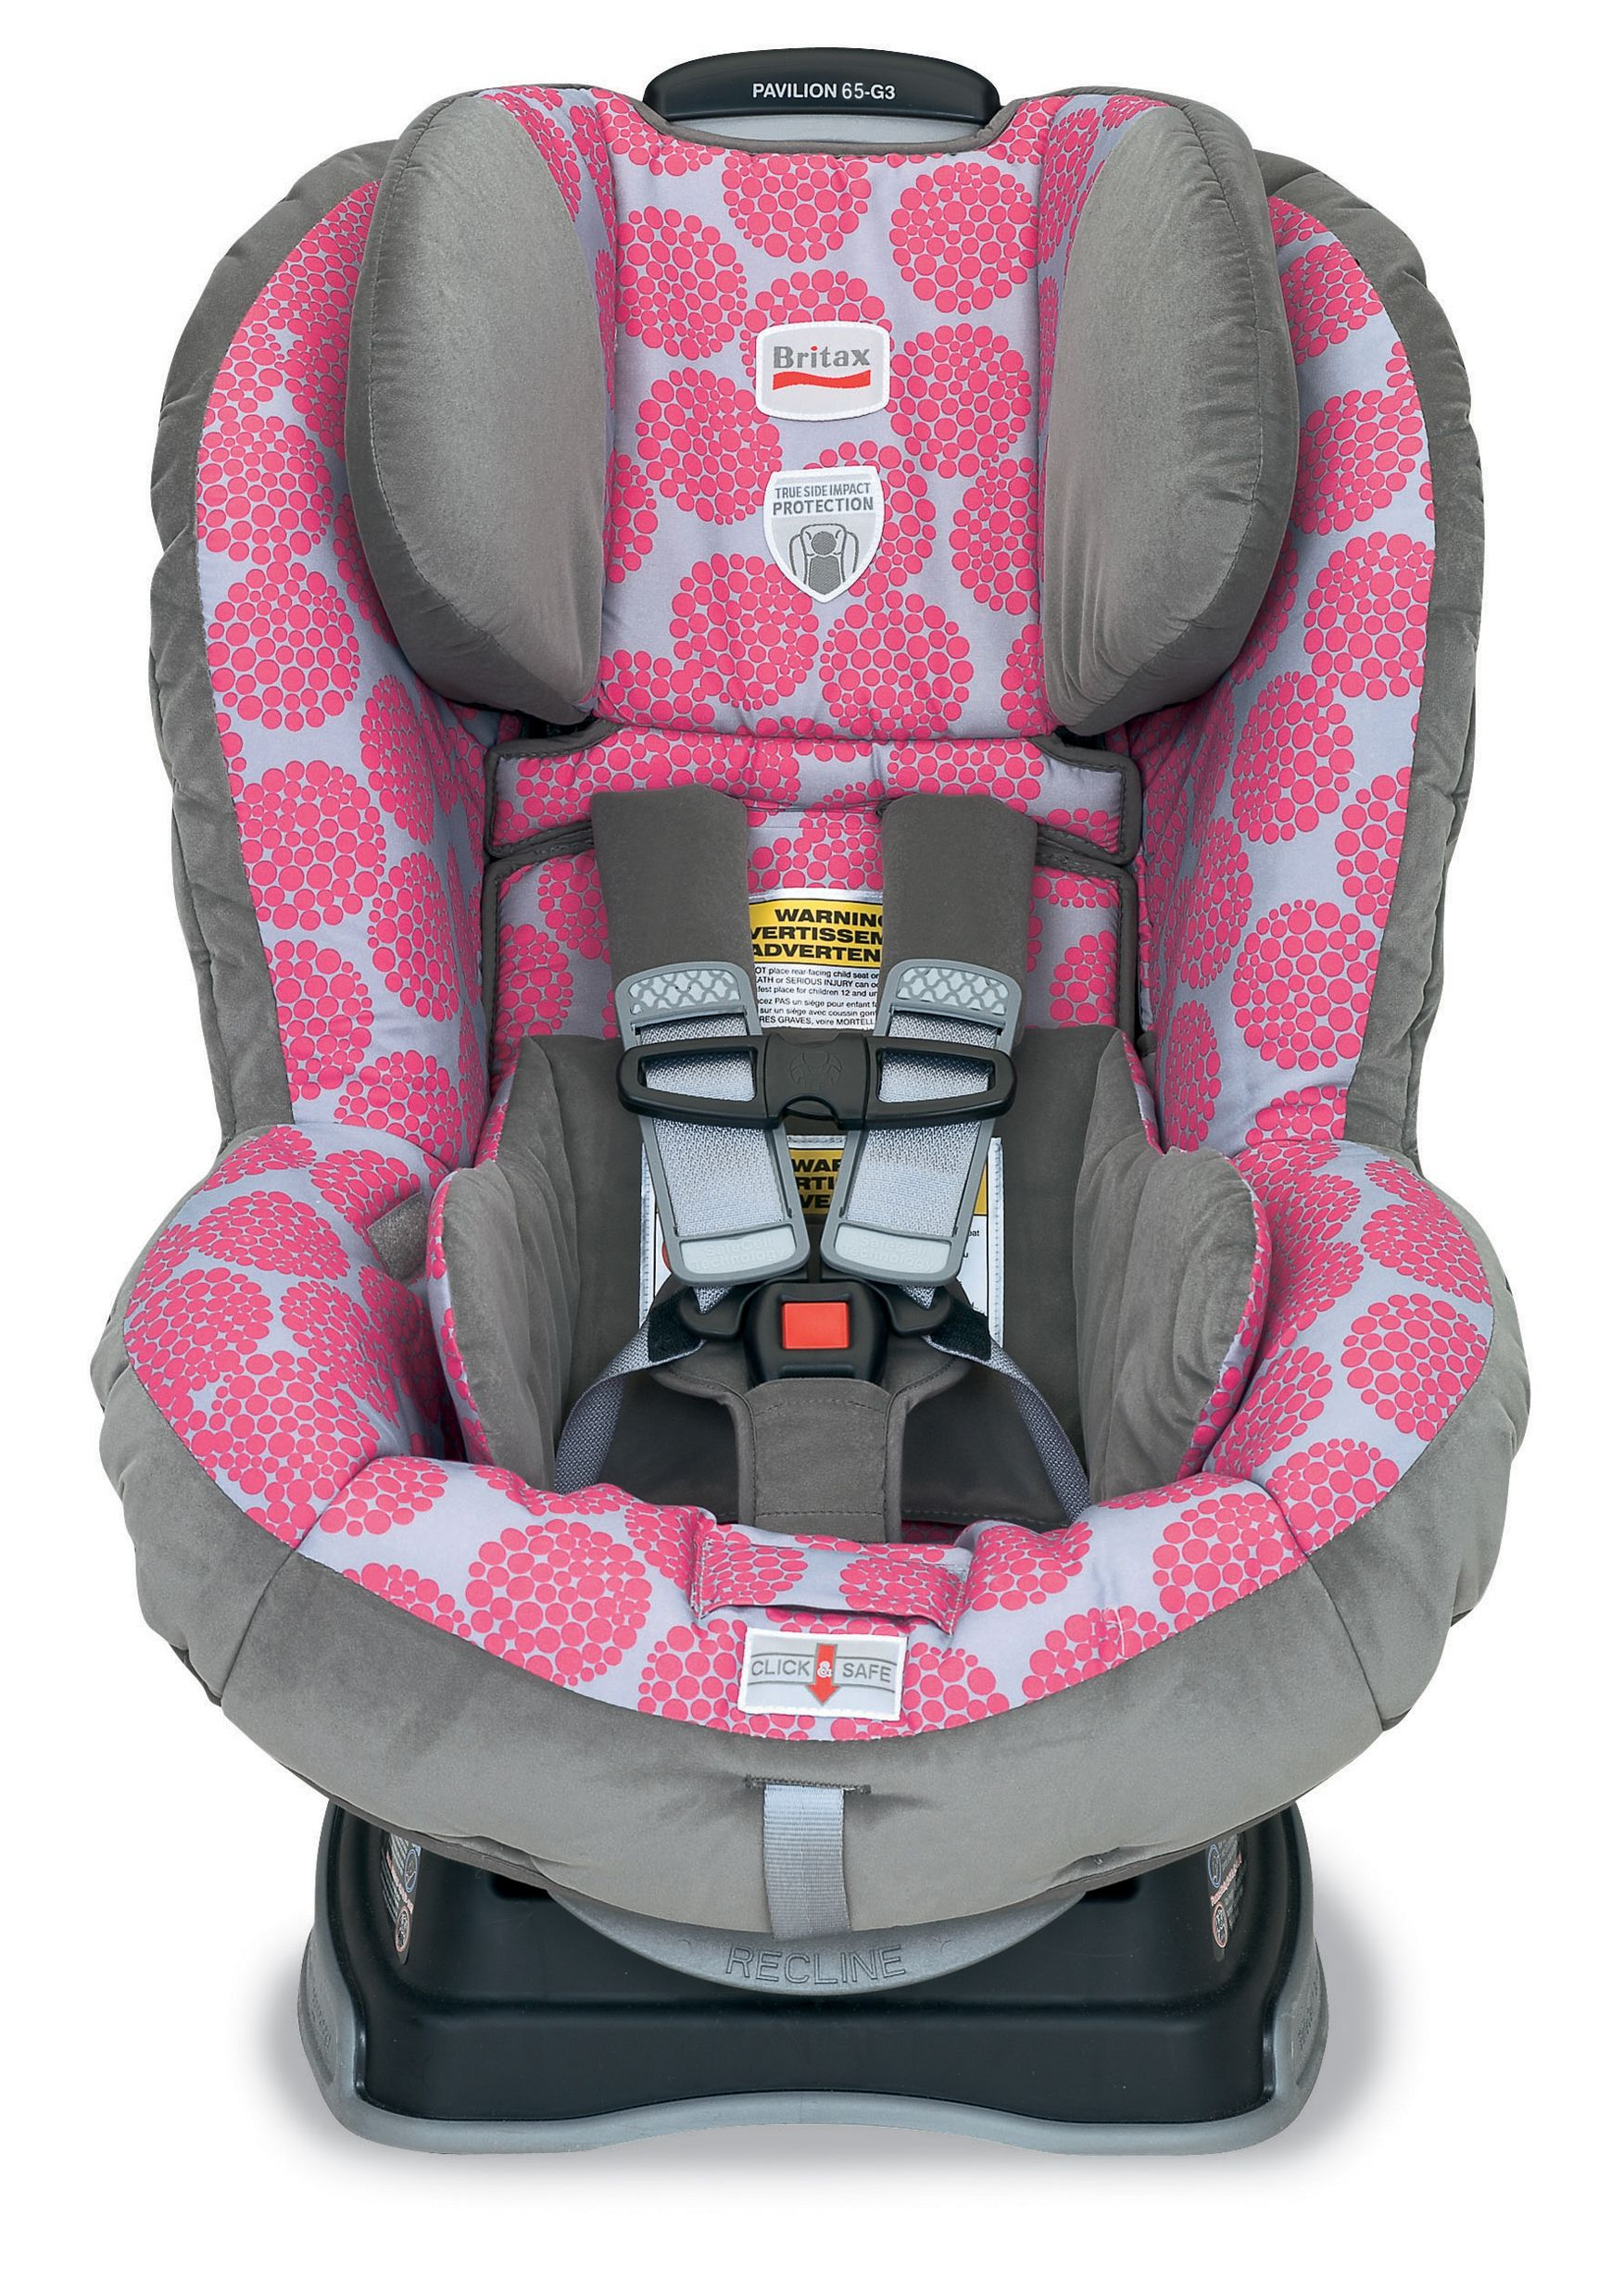 Find this pin and more on britax pavilion 65 g3 britax pavilion 70 convertible car seat